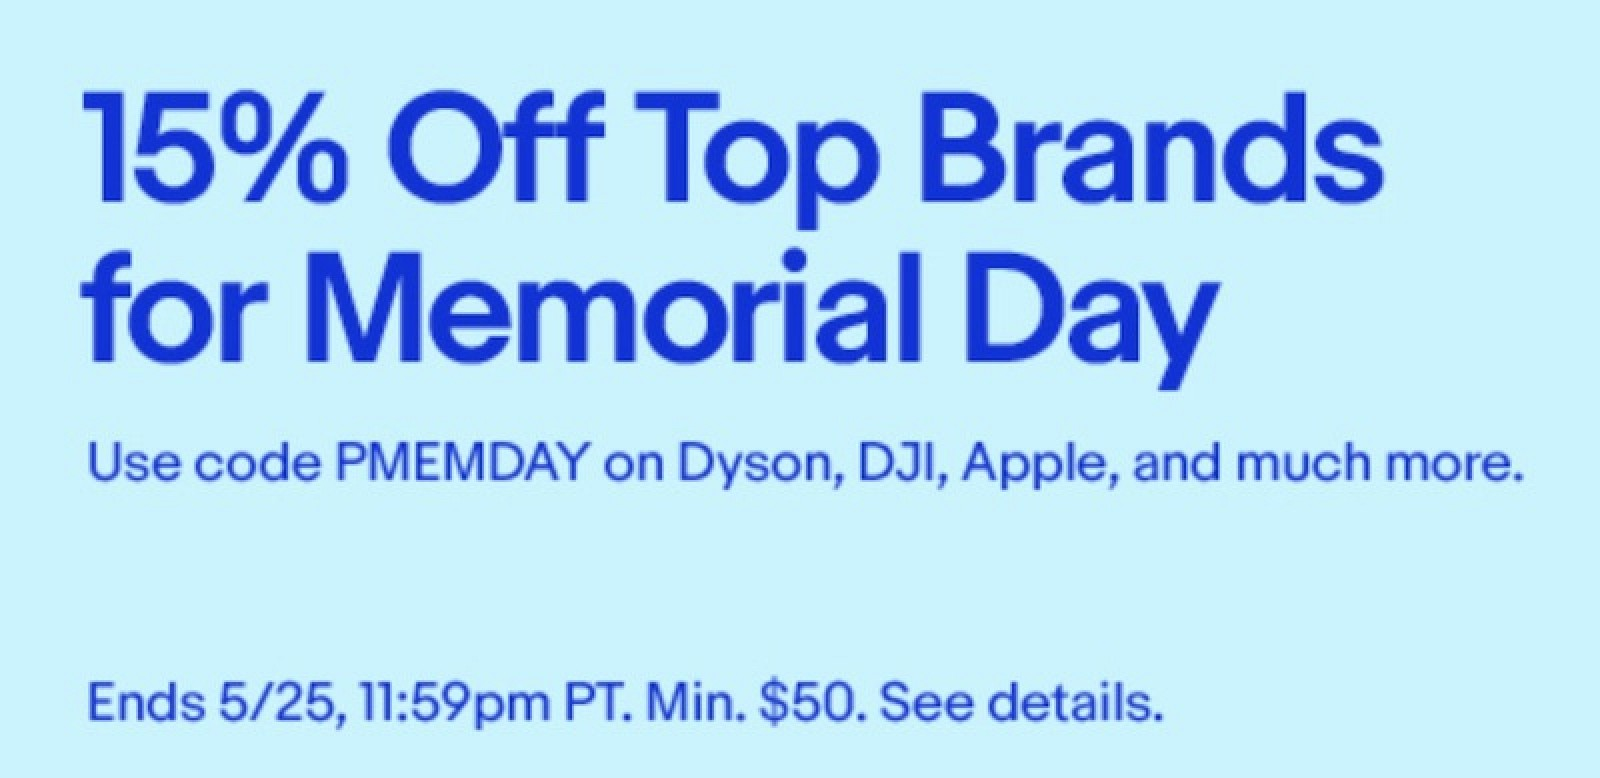 deals ebay 15 off memorial day coupon anker and koogeek amazon sales and more macrumors. Black Bedroom Furniture Sets. Home Design Ideas